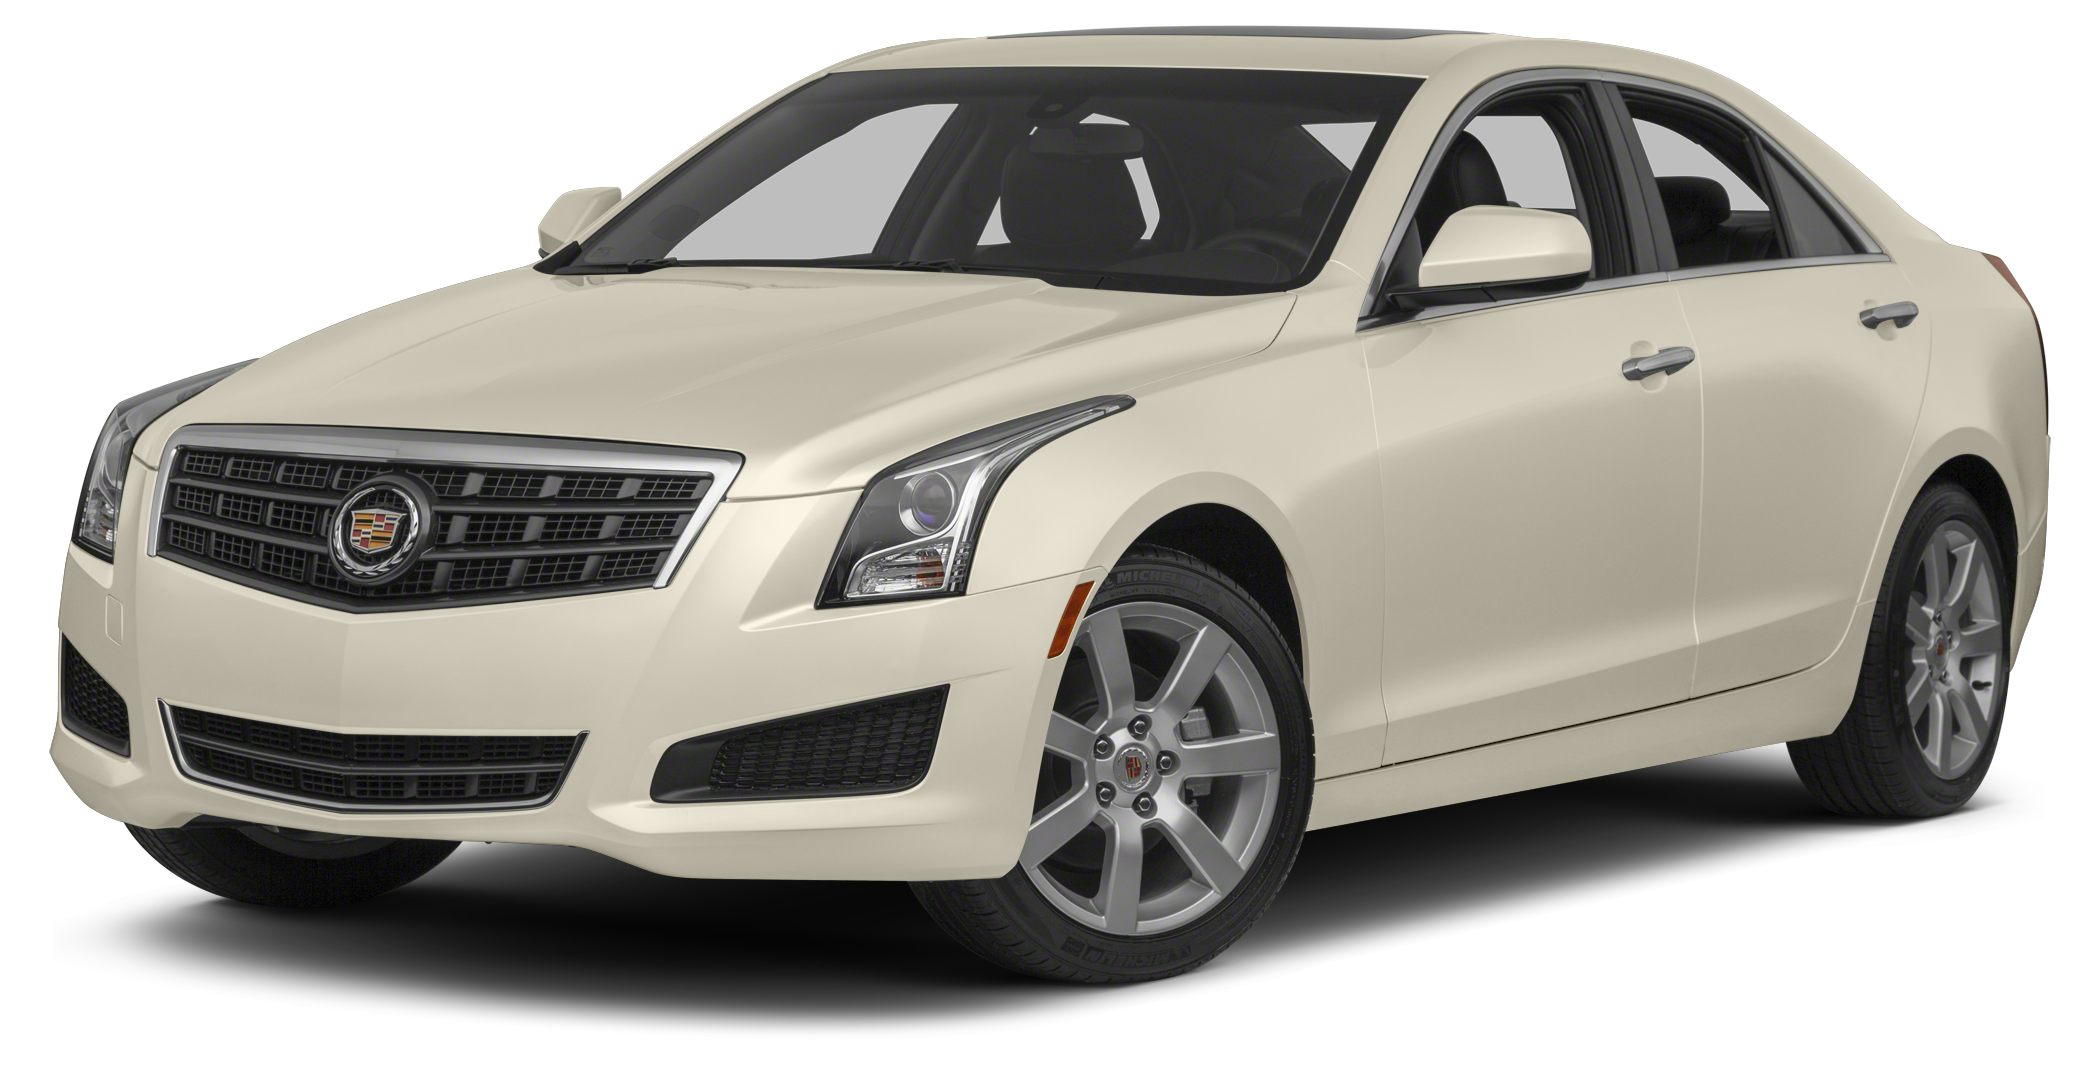 2013 Cadillac ATS 20 Turbo One owner pride and joy is yours for the taking You can thank the Sun